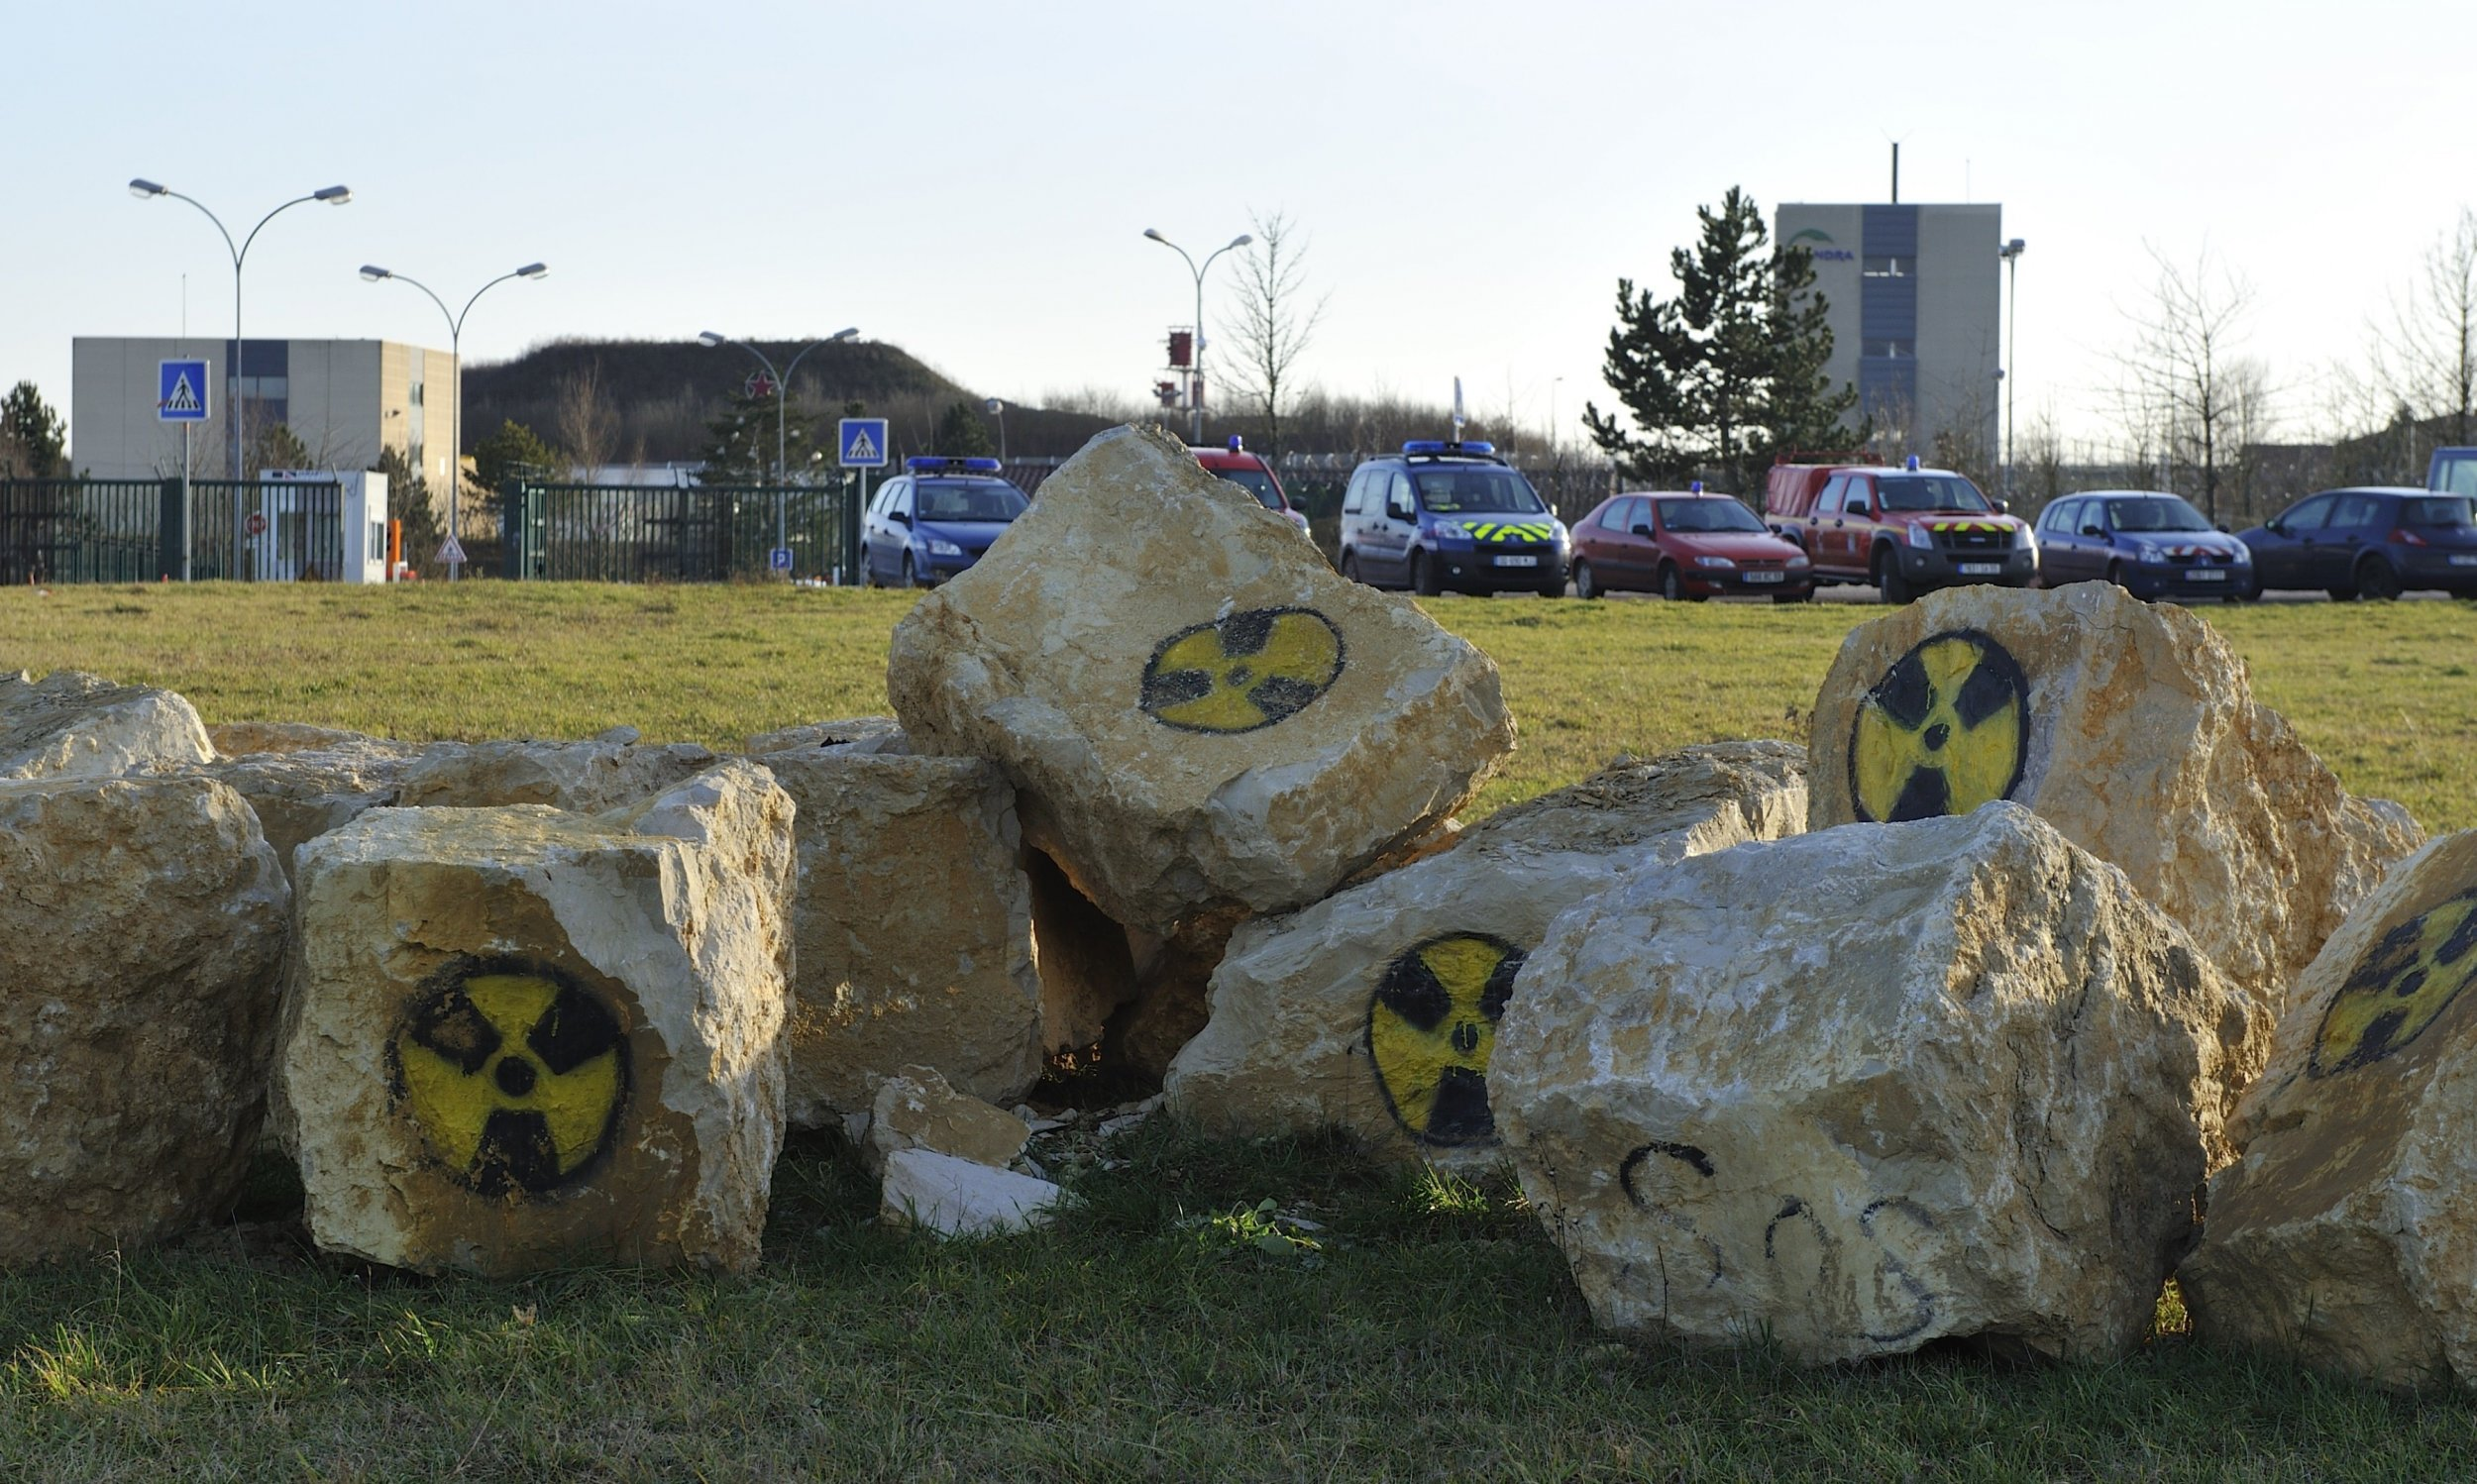 Nuclear waste site